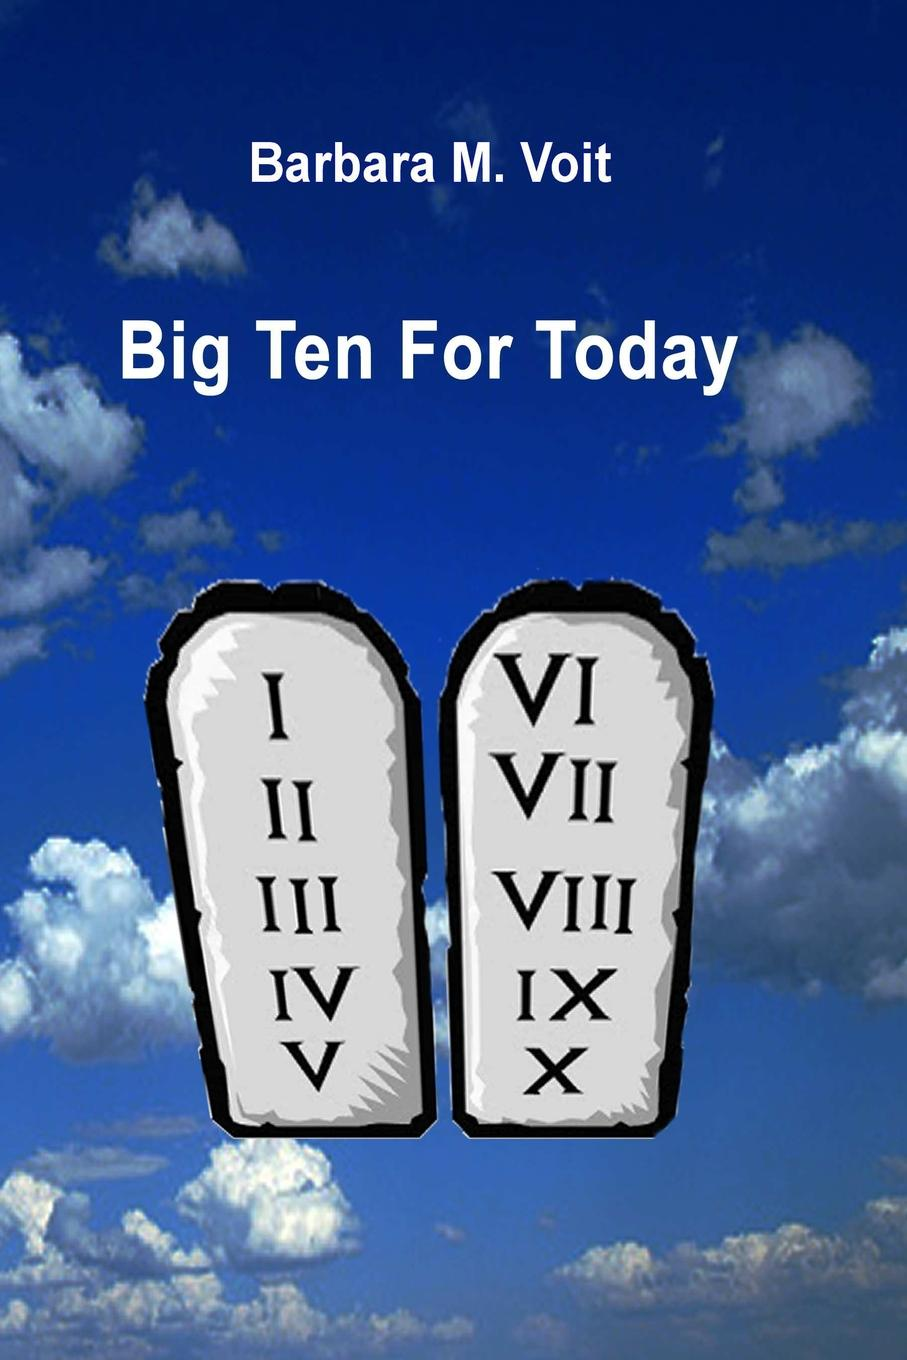 Barbara M. Voit BIG TEN FOR TODAY ten commandments of working in a hostile environment